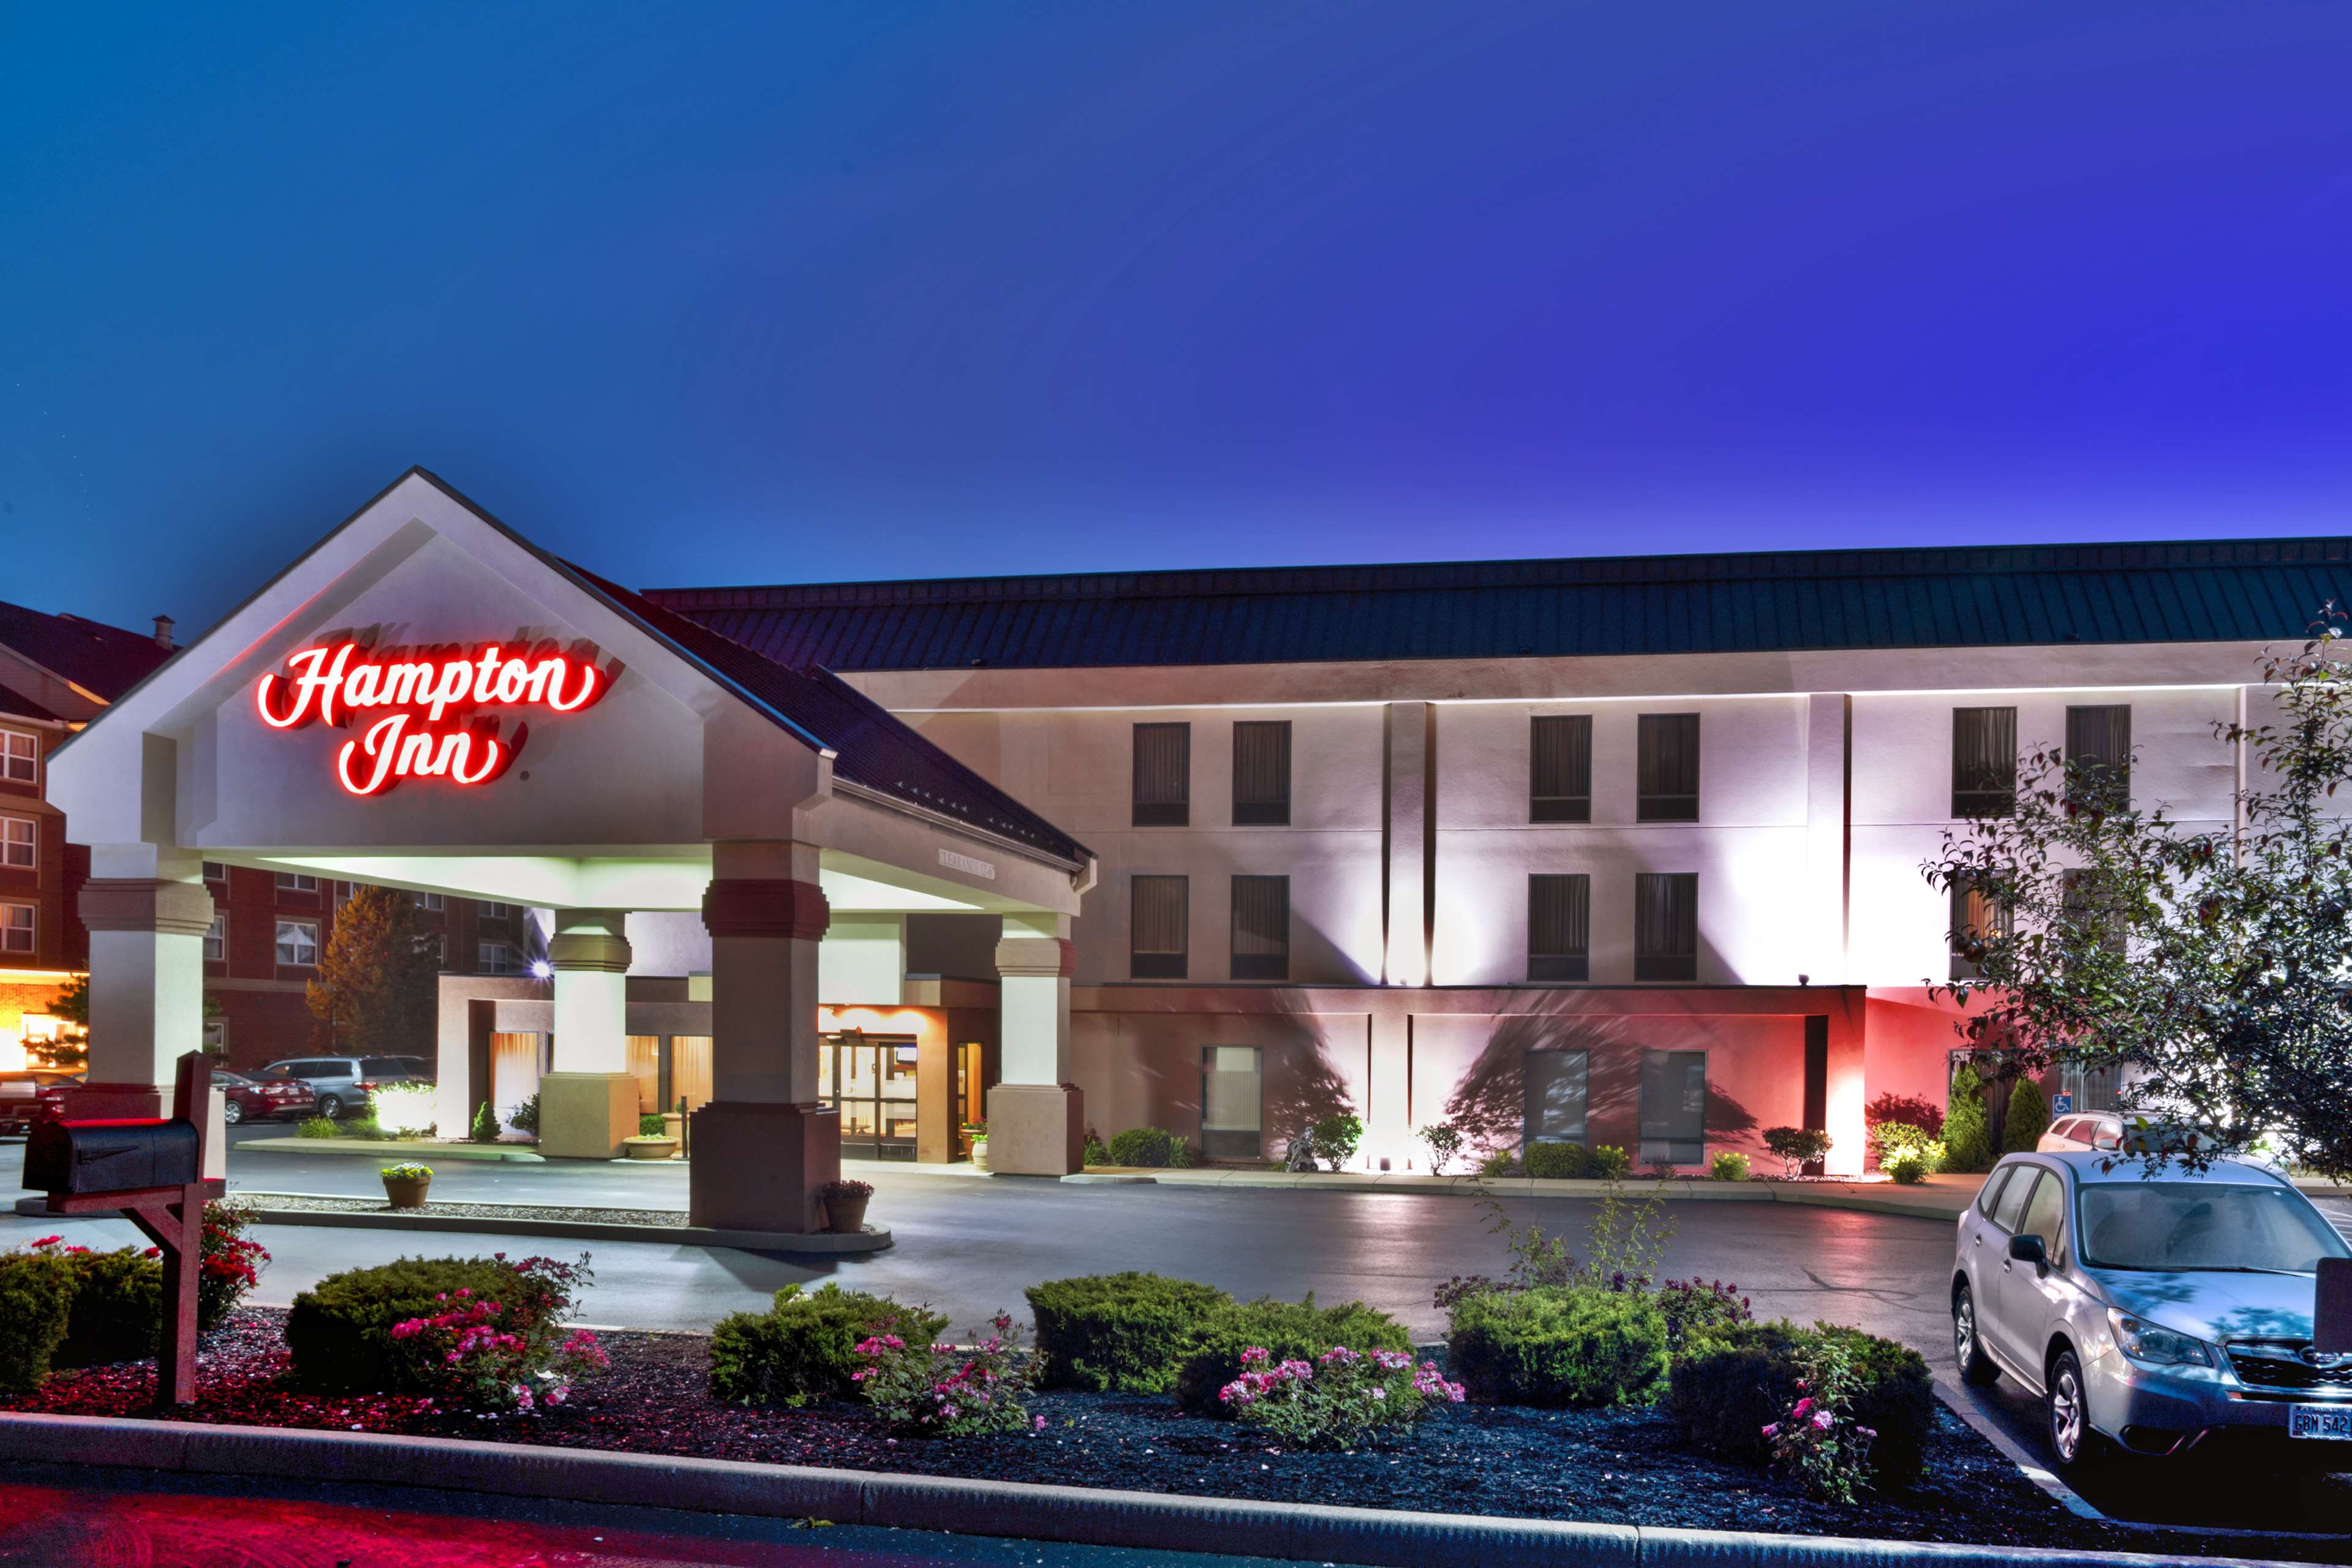 Hampton Inn Cincinnati Airport-North image 2